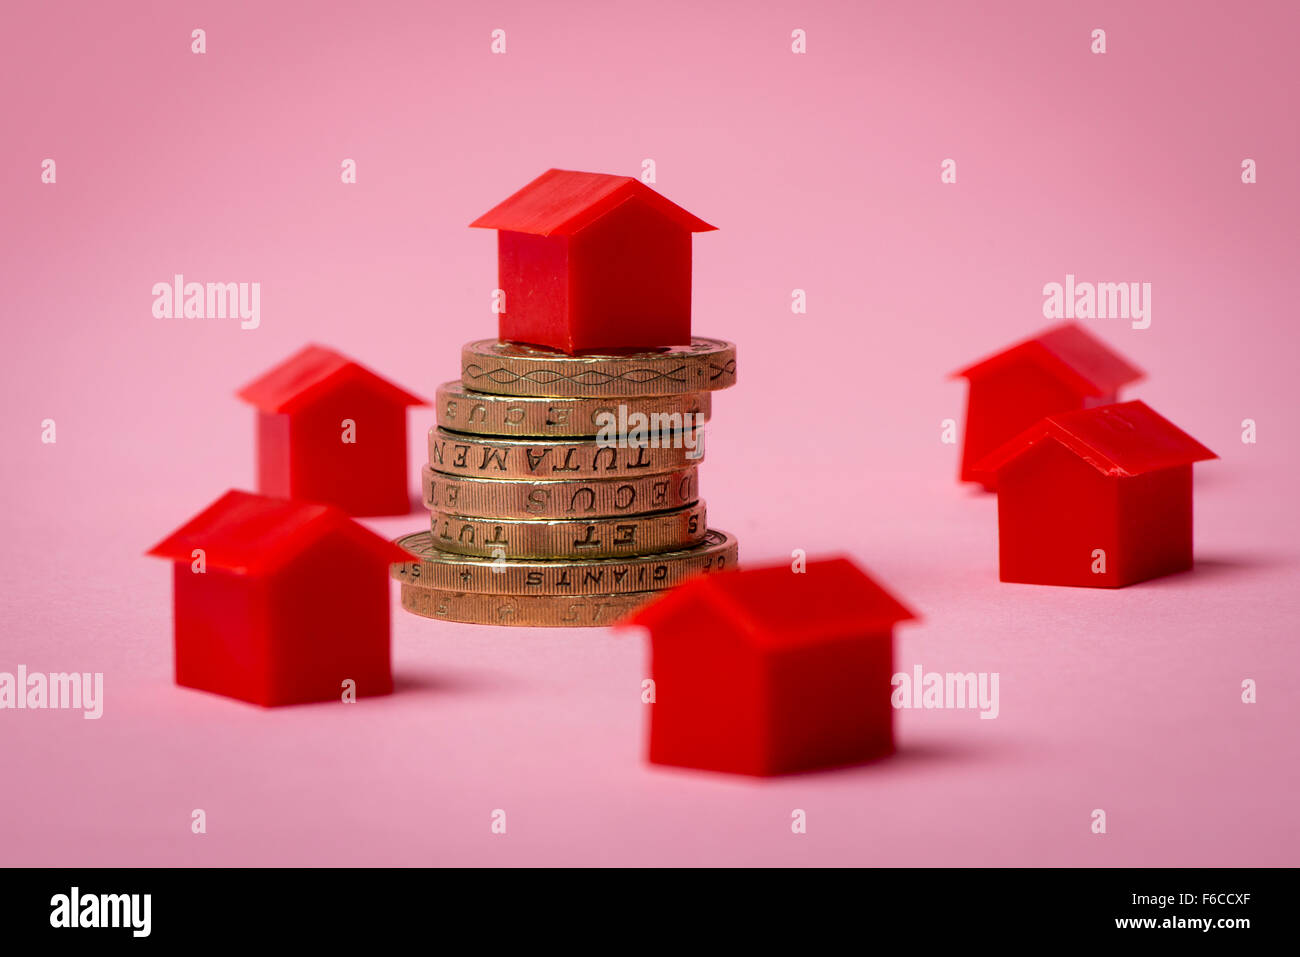 Property price concept - Stock Image